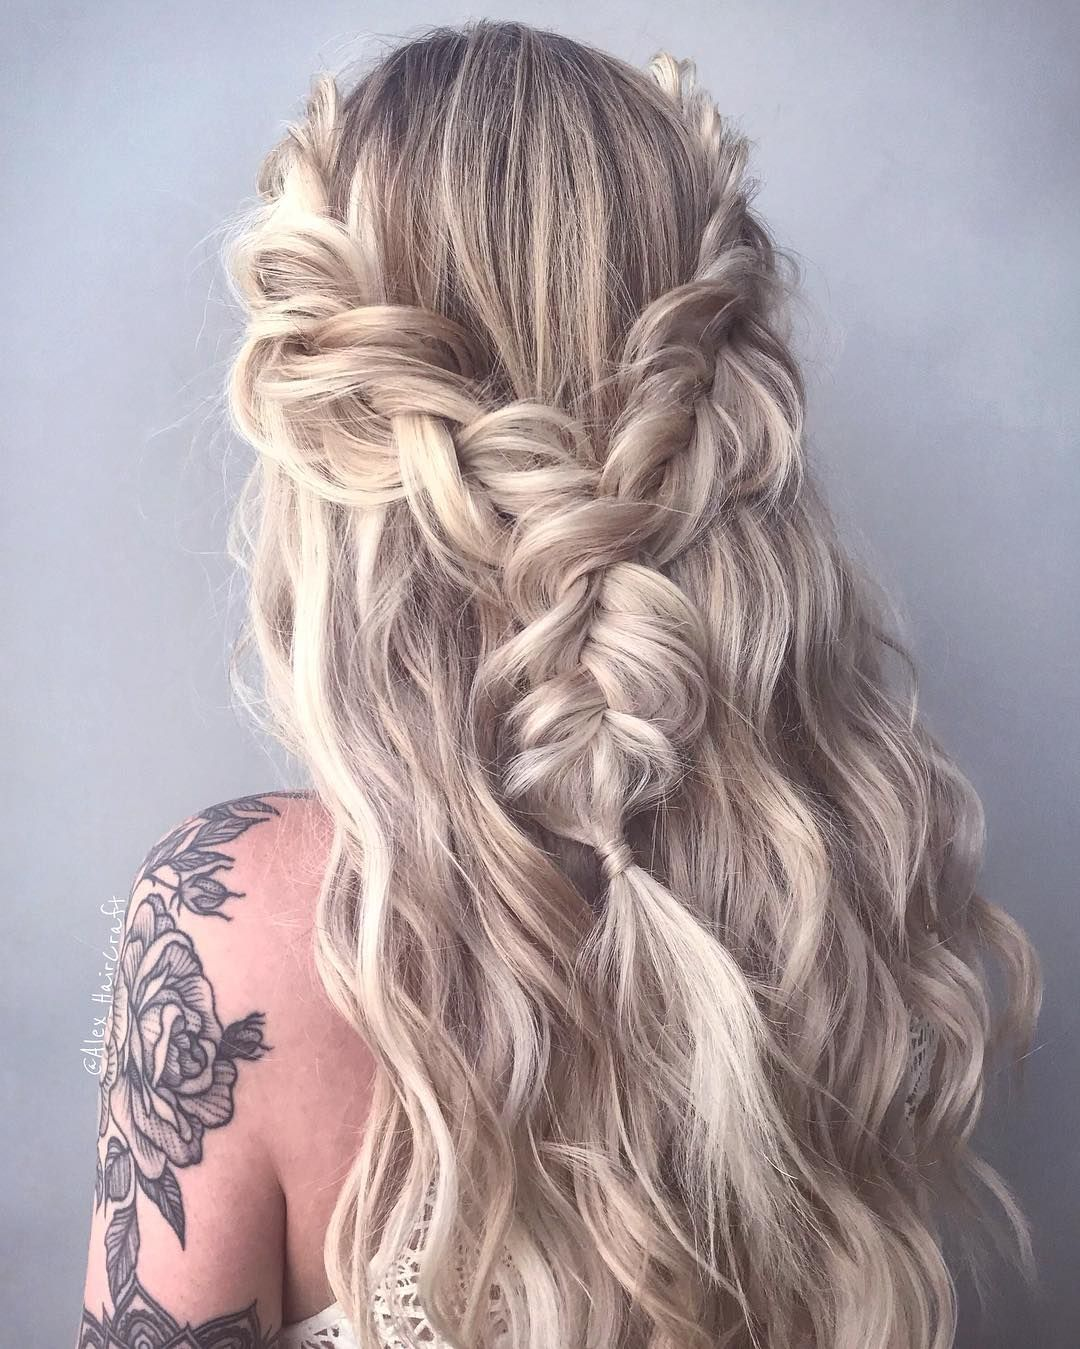 Gorgeous braided hairstyles alex pelerossi wicked hair